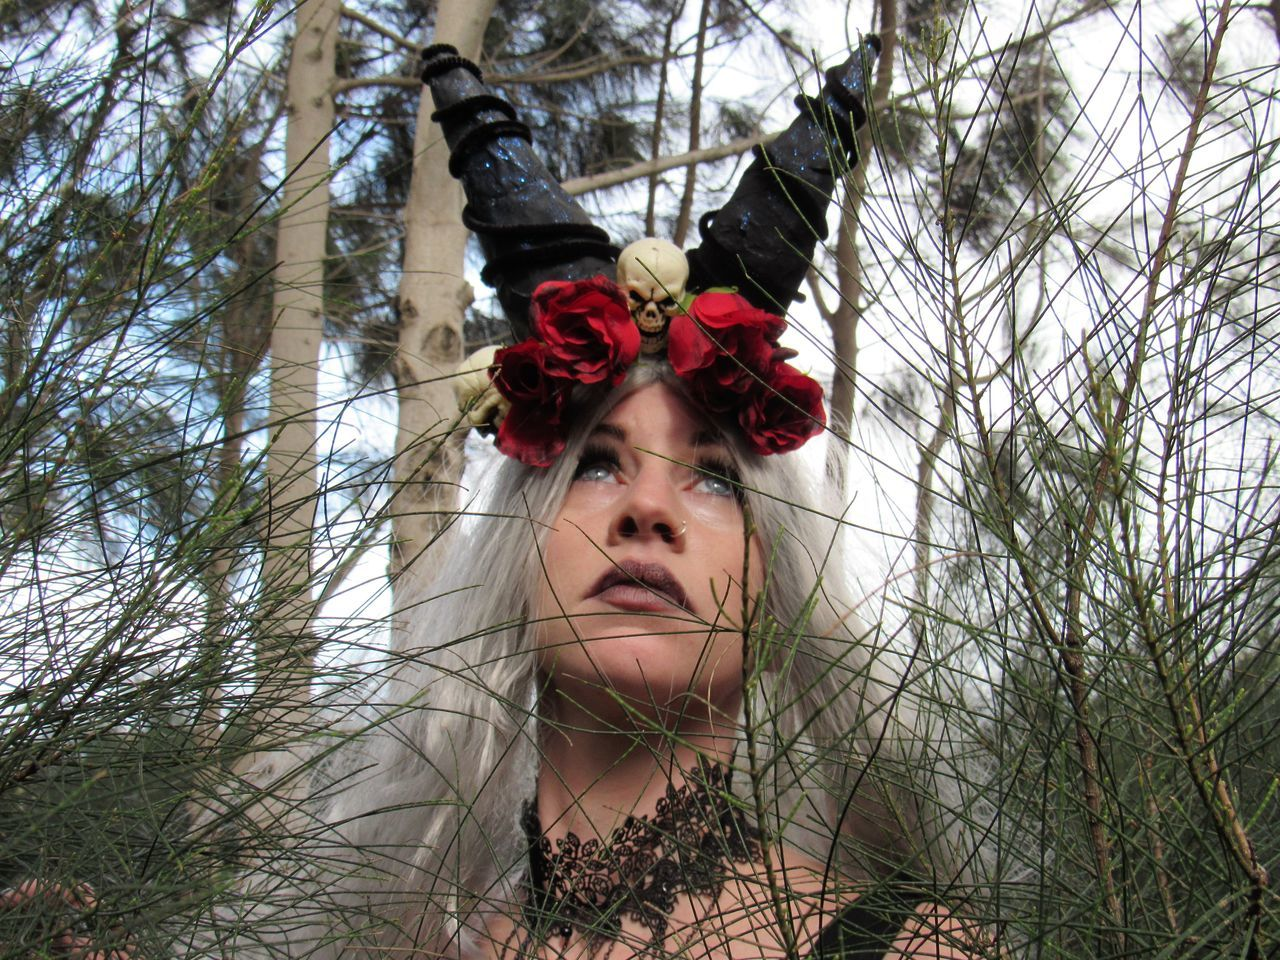 Gothic Side Adults Only Beauty Beauty In Nature Blond Hair Flower Gothic Beauty  Headshot Horns On A Female Definatly Not Lloll Lifestyles Make-up Nature Outdoors Portrait Red Roses Are Red Young Women Uniqueness Carnival Crowds And Details Premium Collection